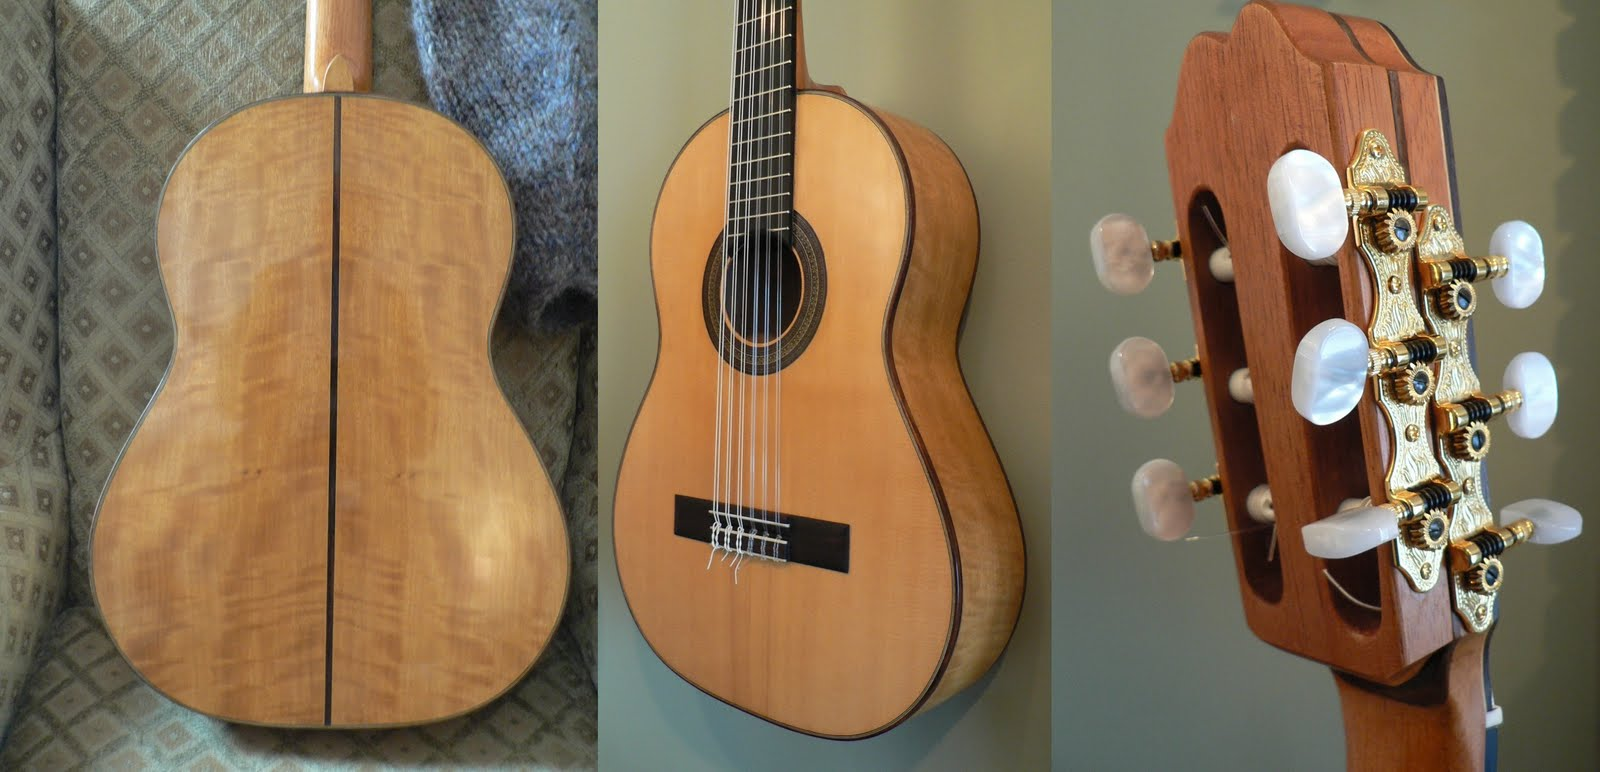 how to put strings on a classical guitar